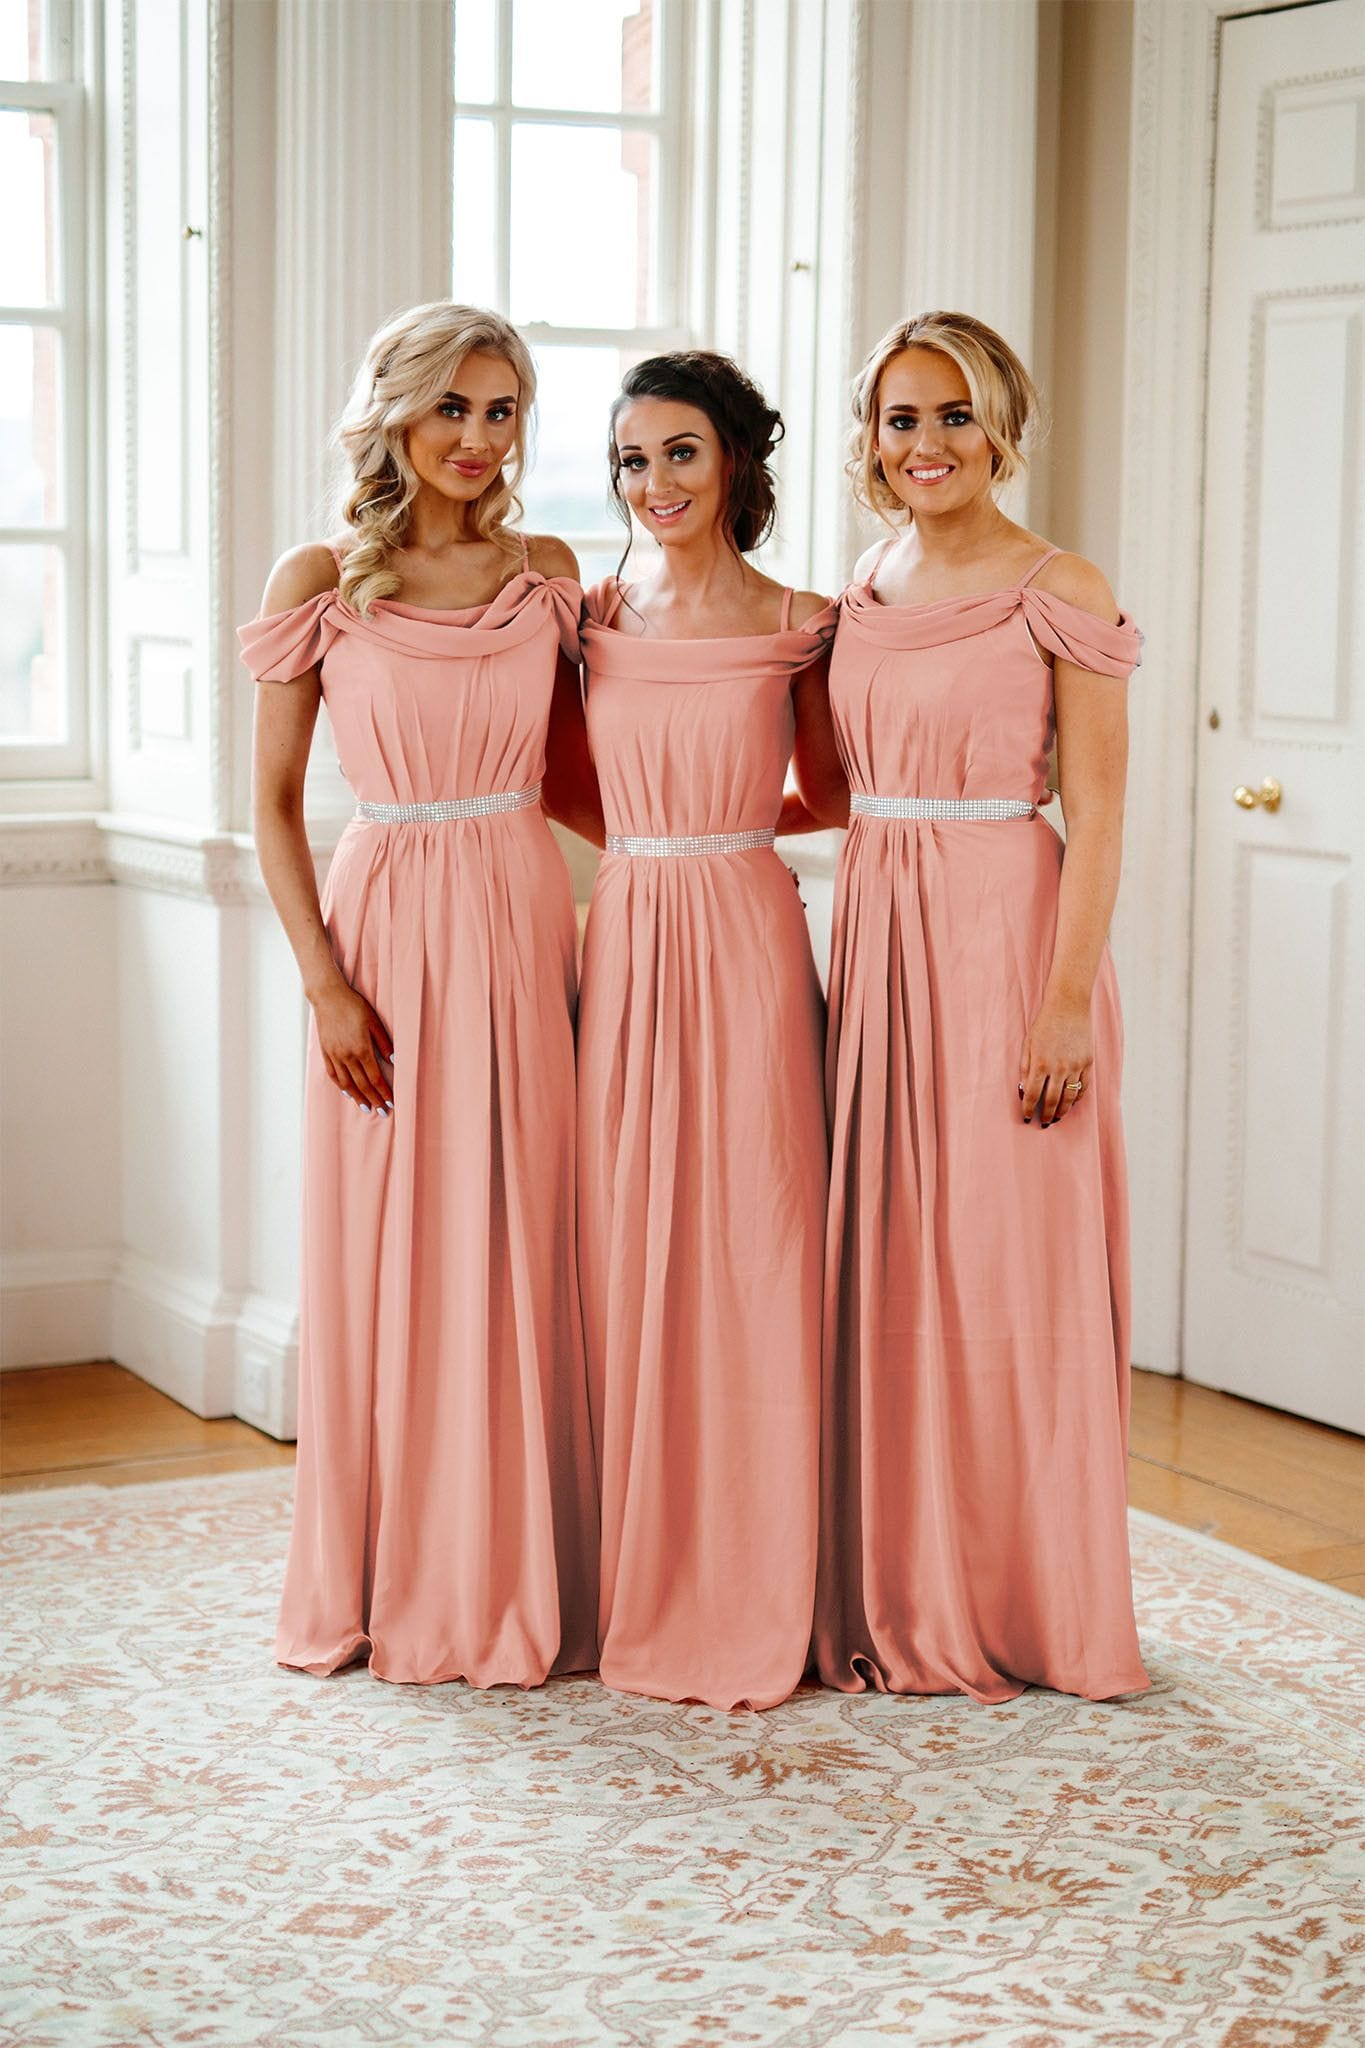 Abigail | Off The Shoulder Bridesmaid Dress - That Special Day Bridal Warehouse